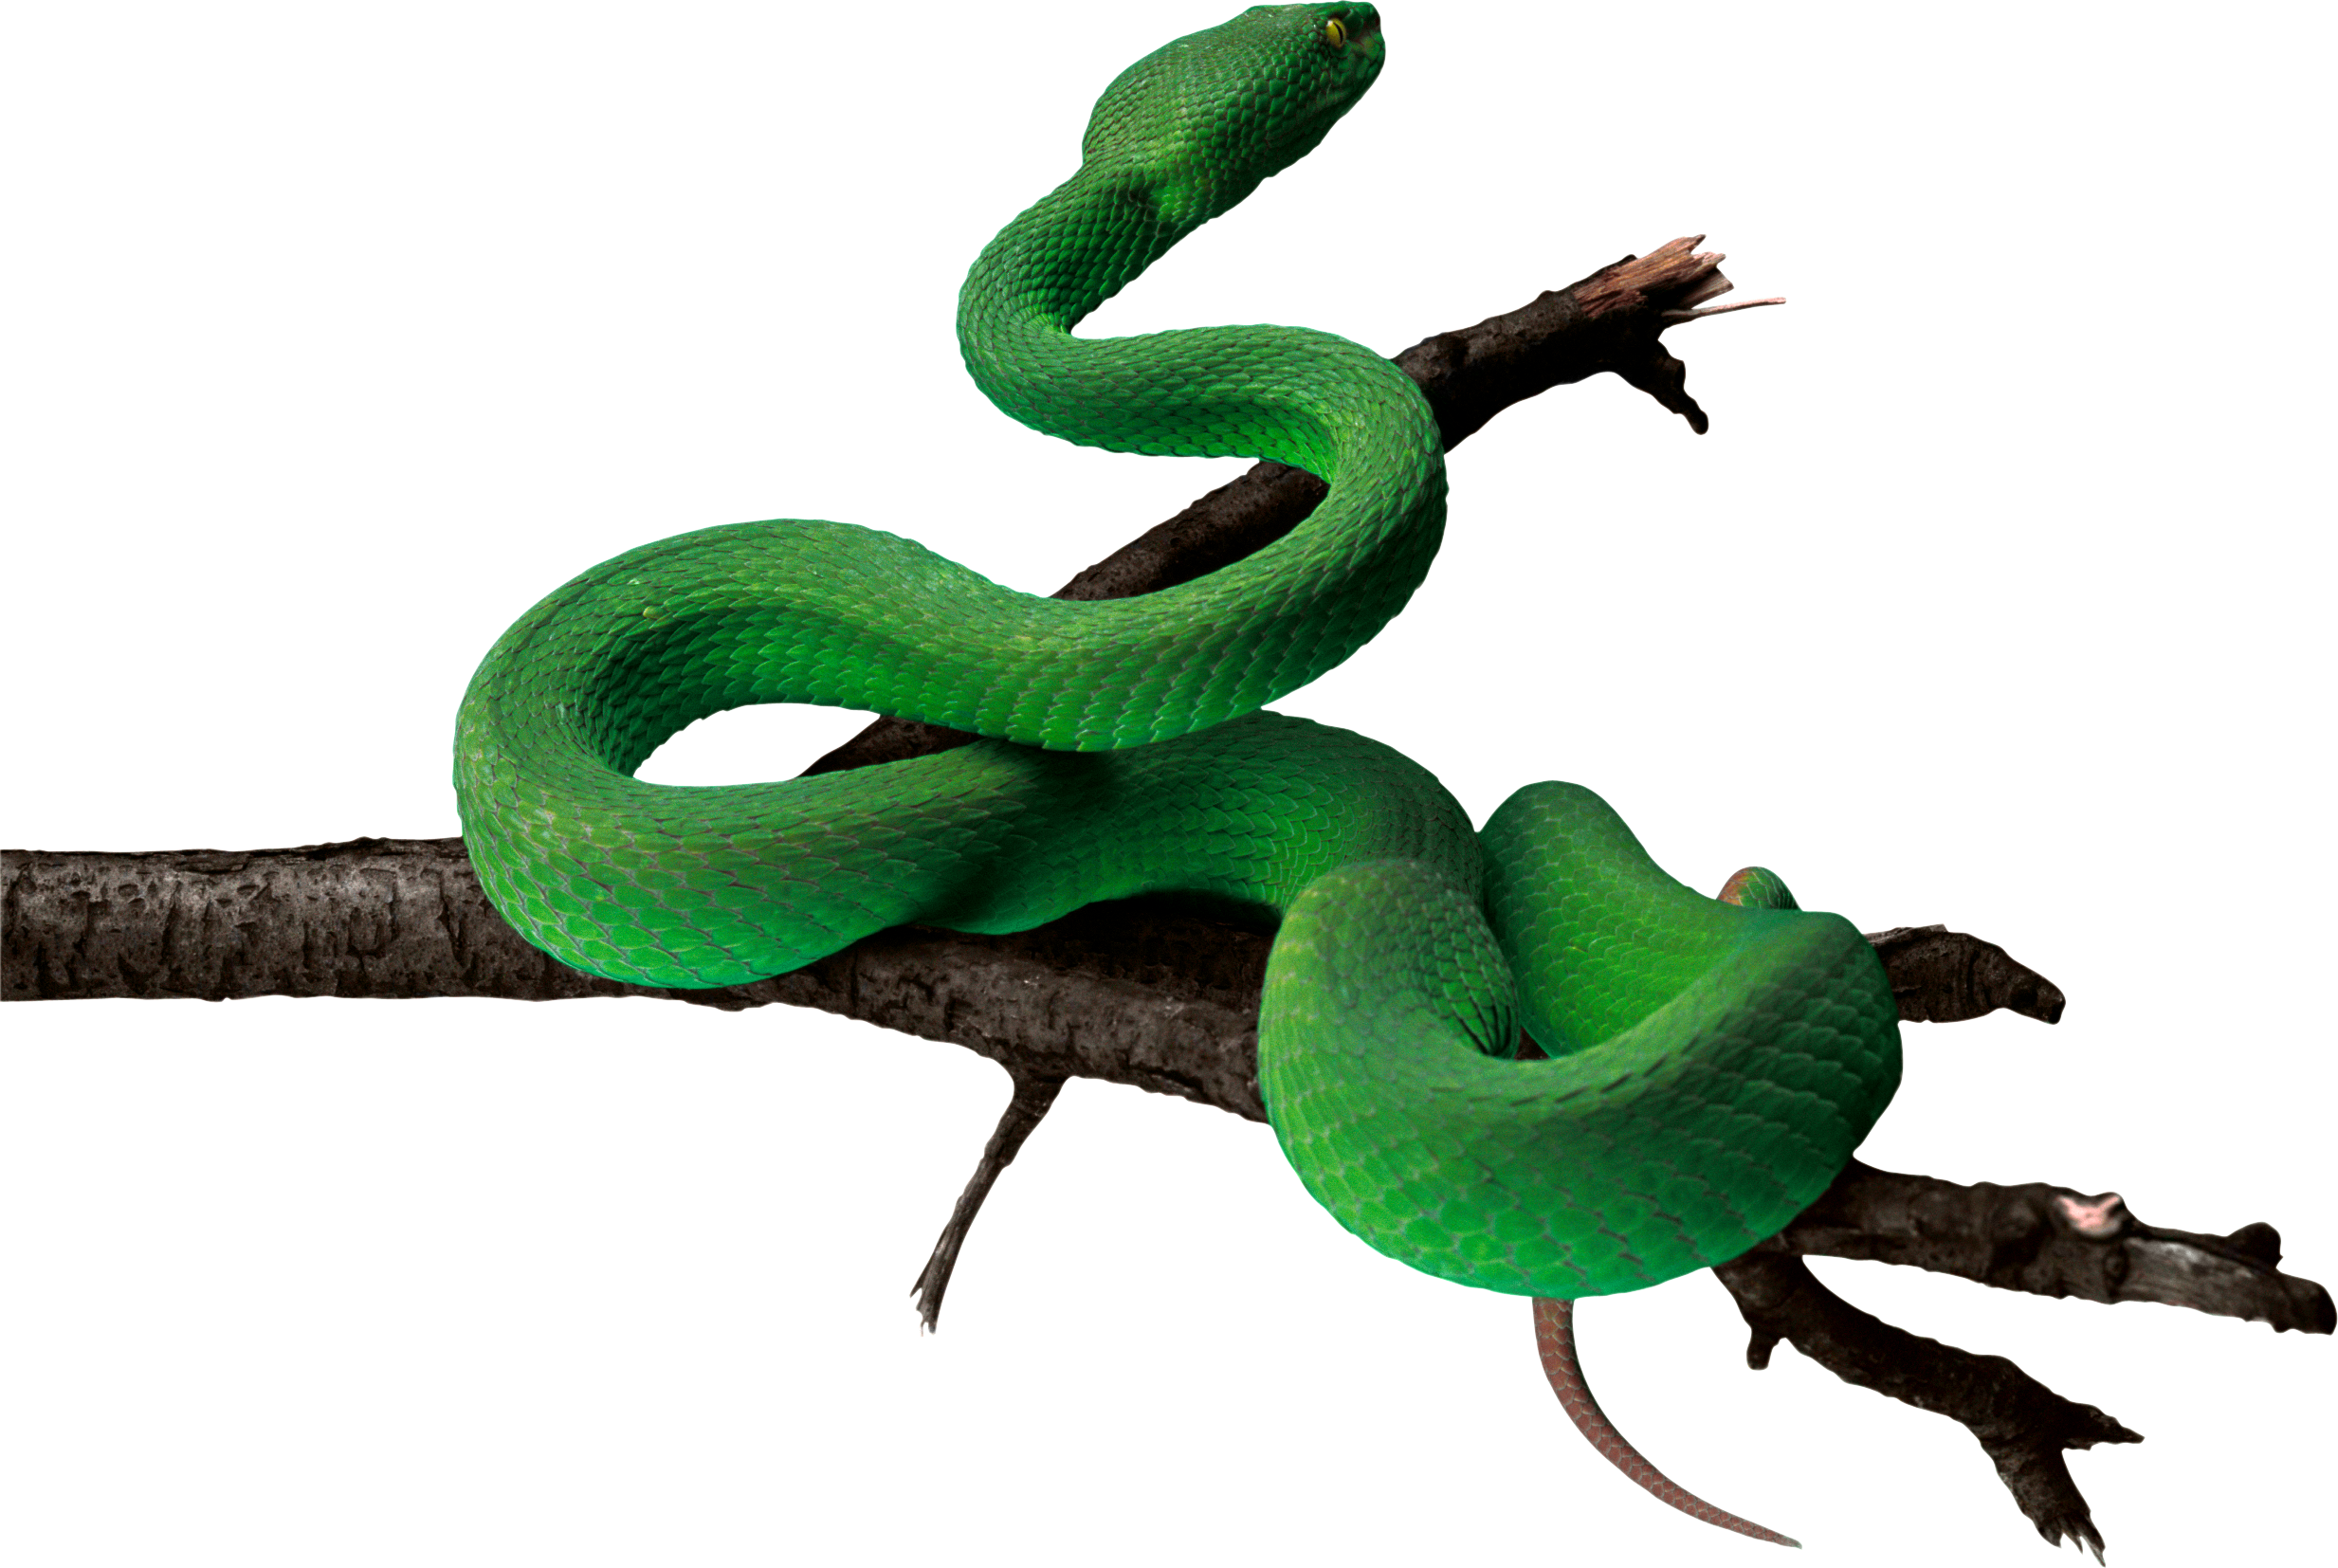 Simple Branch Green Anaconda Pictures image #48153